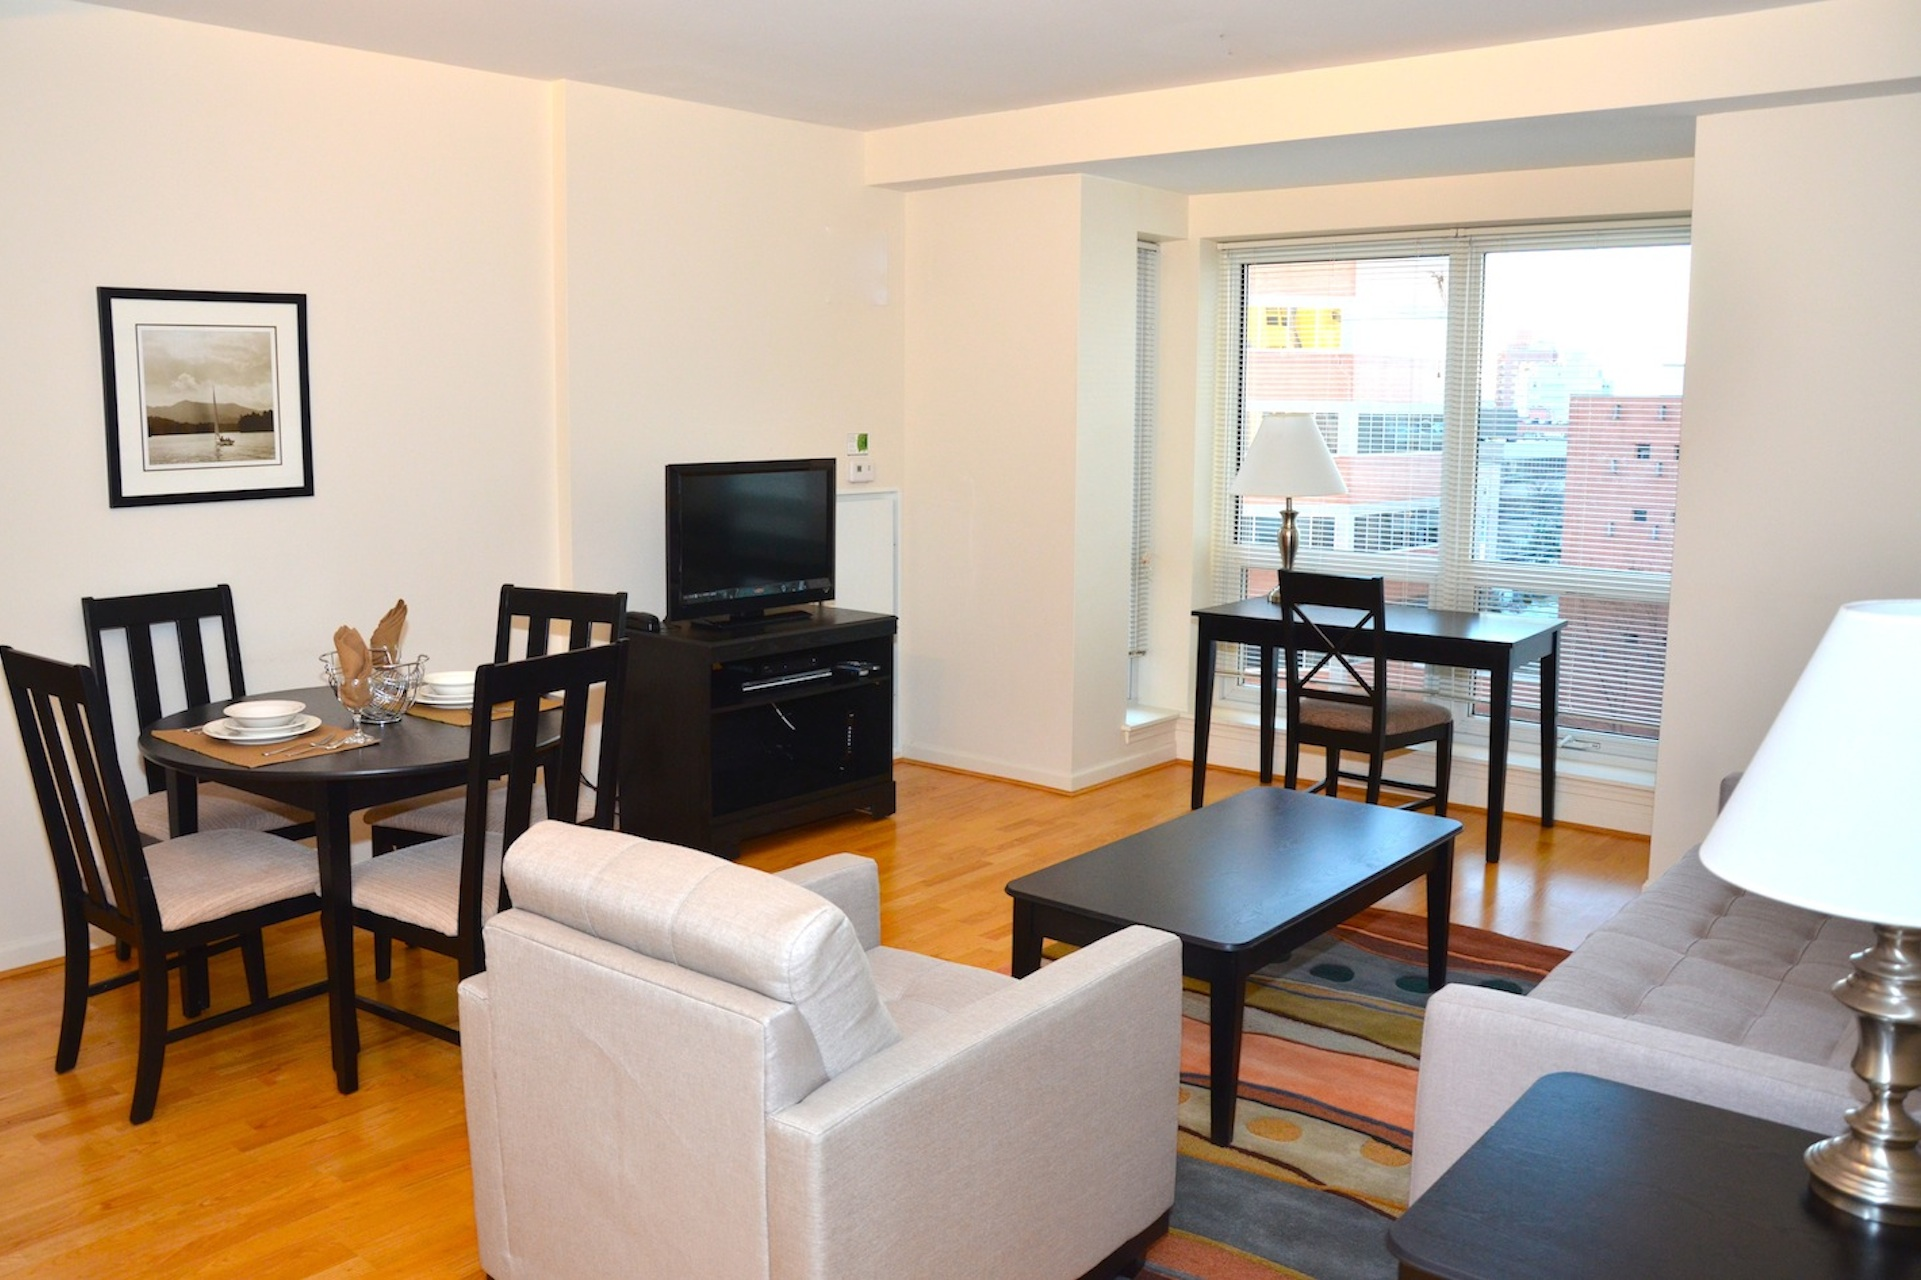 The amelia compass furnished apartments in quincy ma for Kitchen design quincy ma